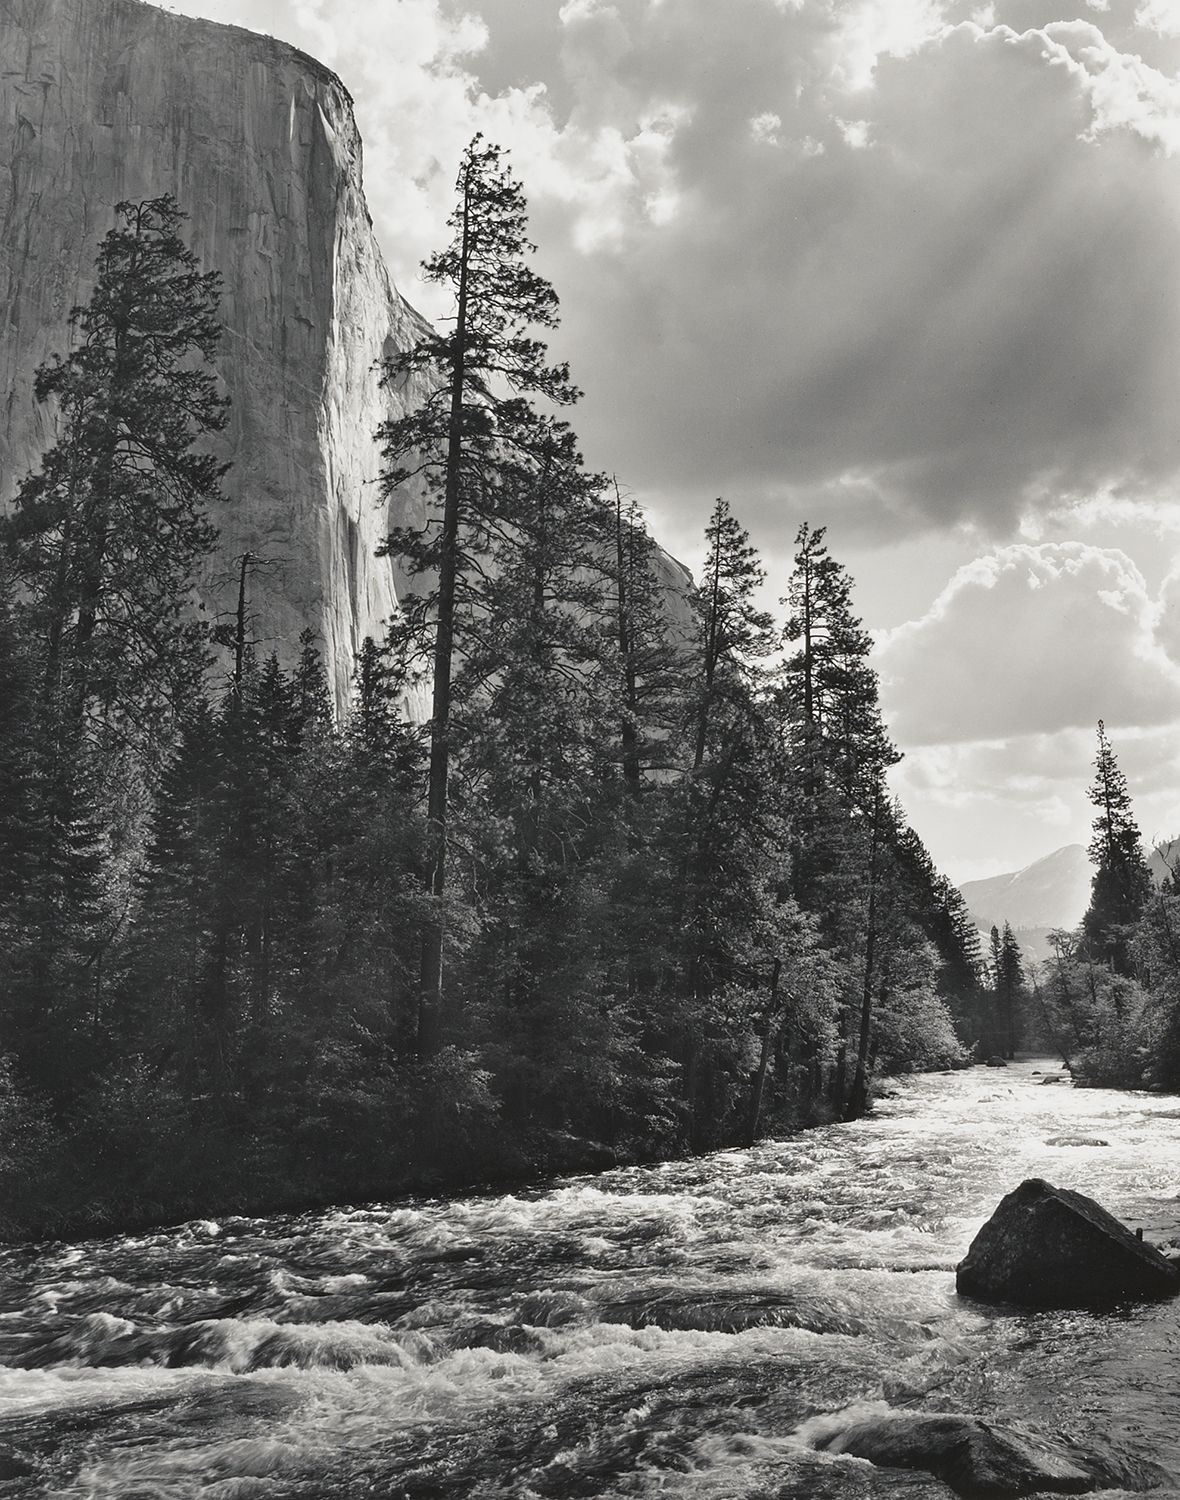 El capitan merced river clouds by ansel adams black and white